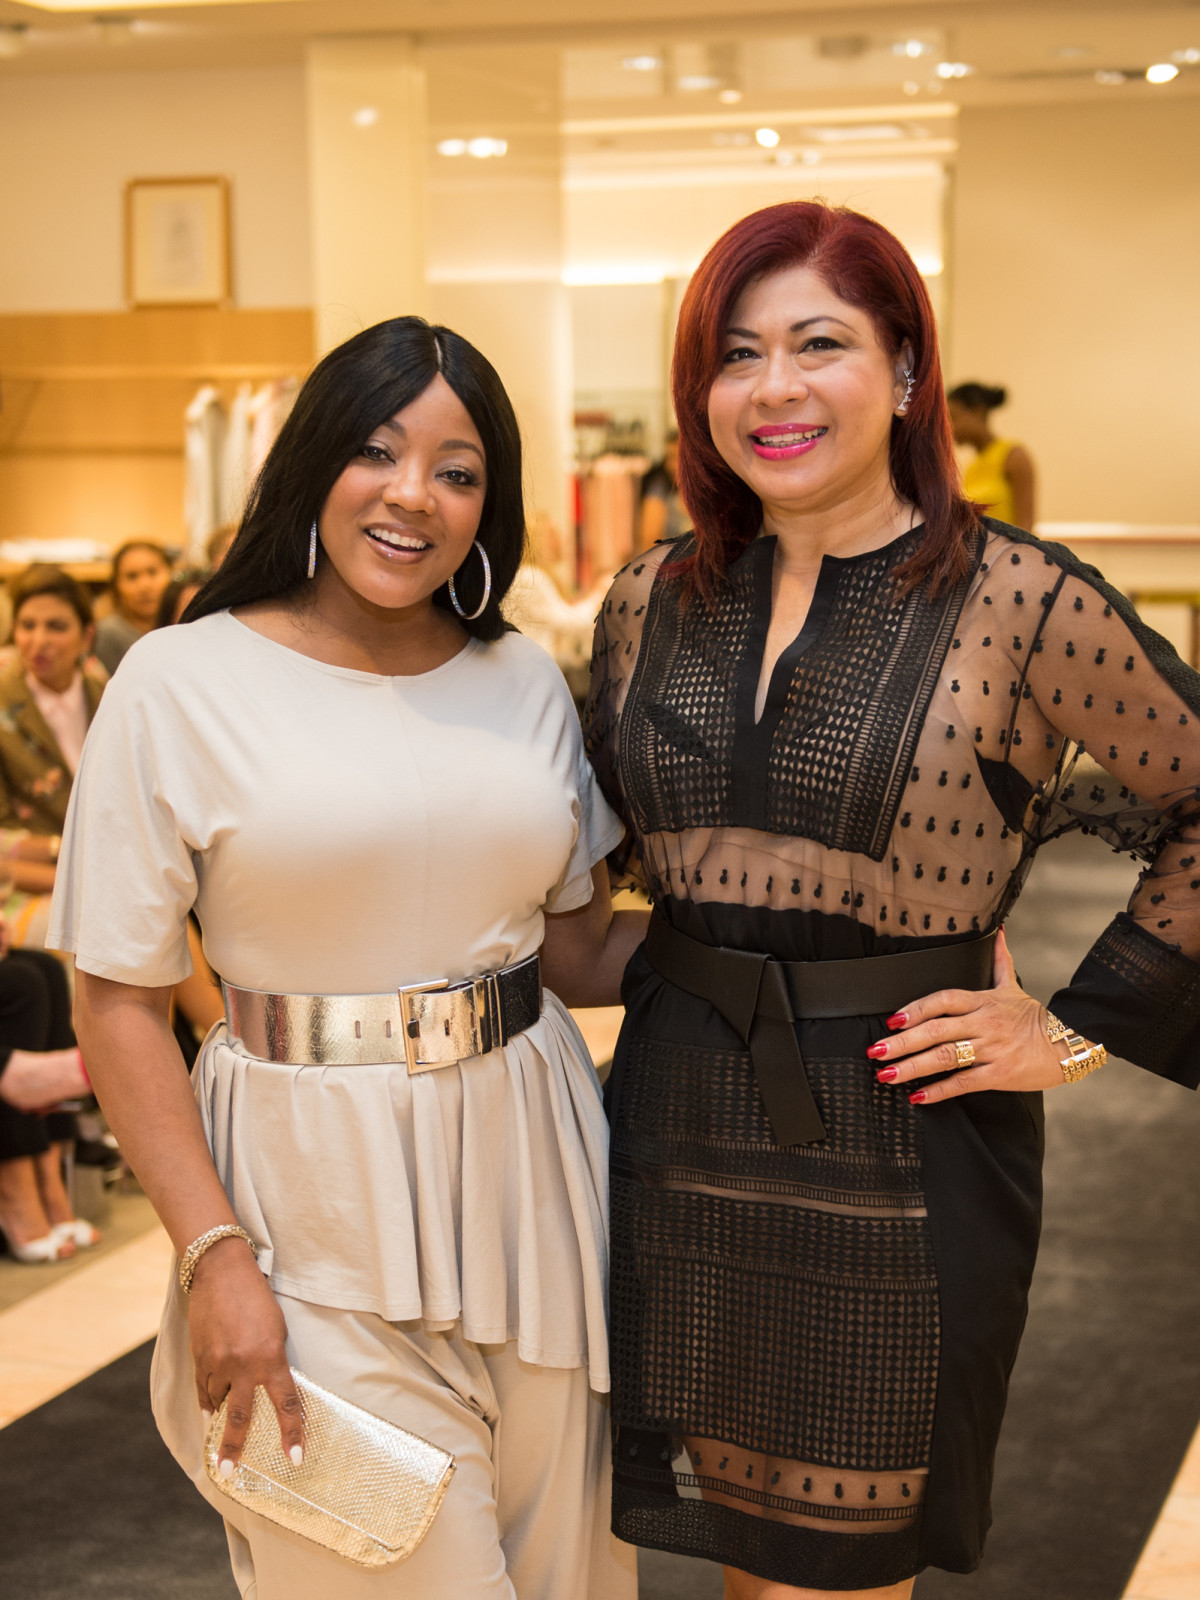 Earlene Buggs and Blanca Sachtouras at Neiman Marcus Trend Event